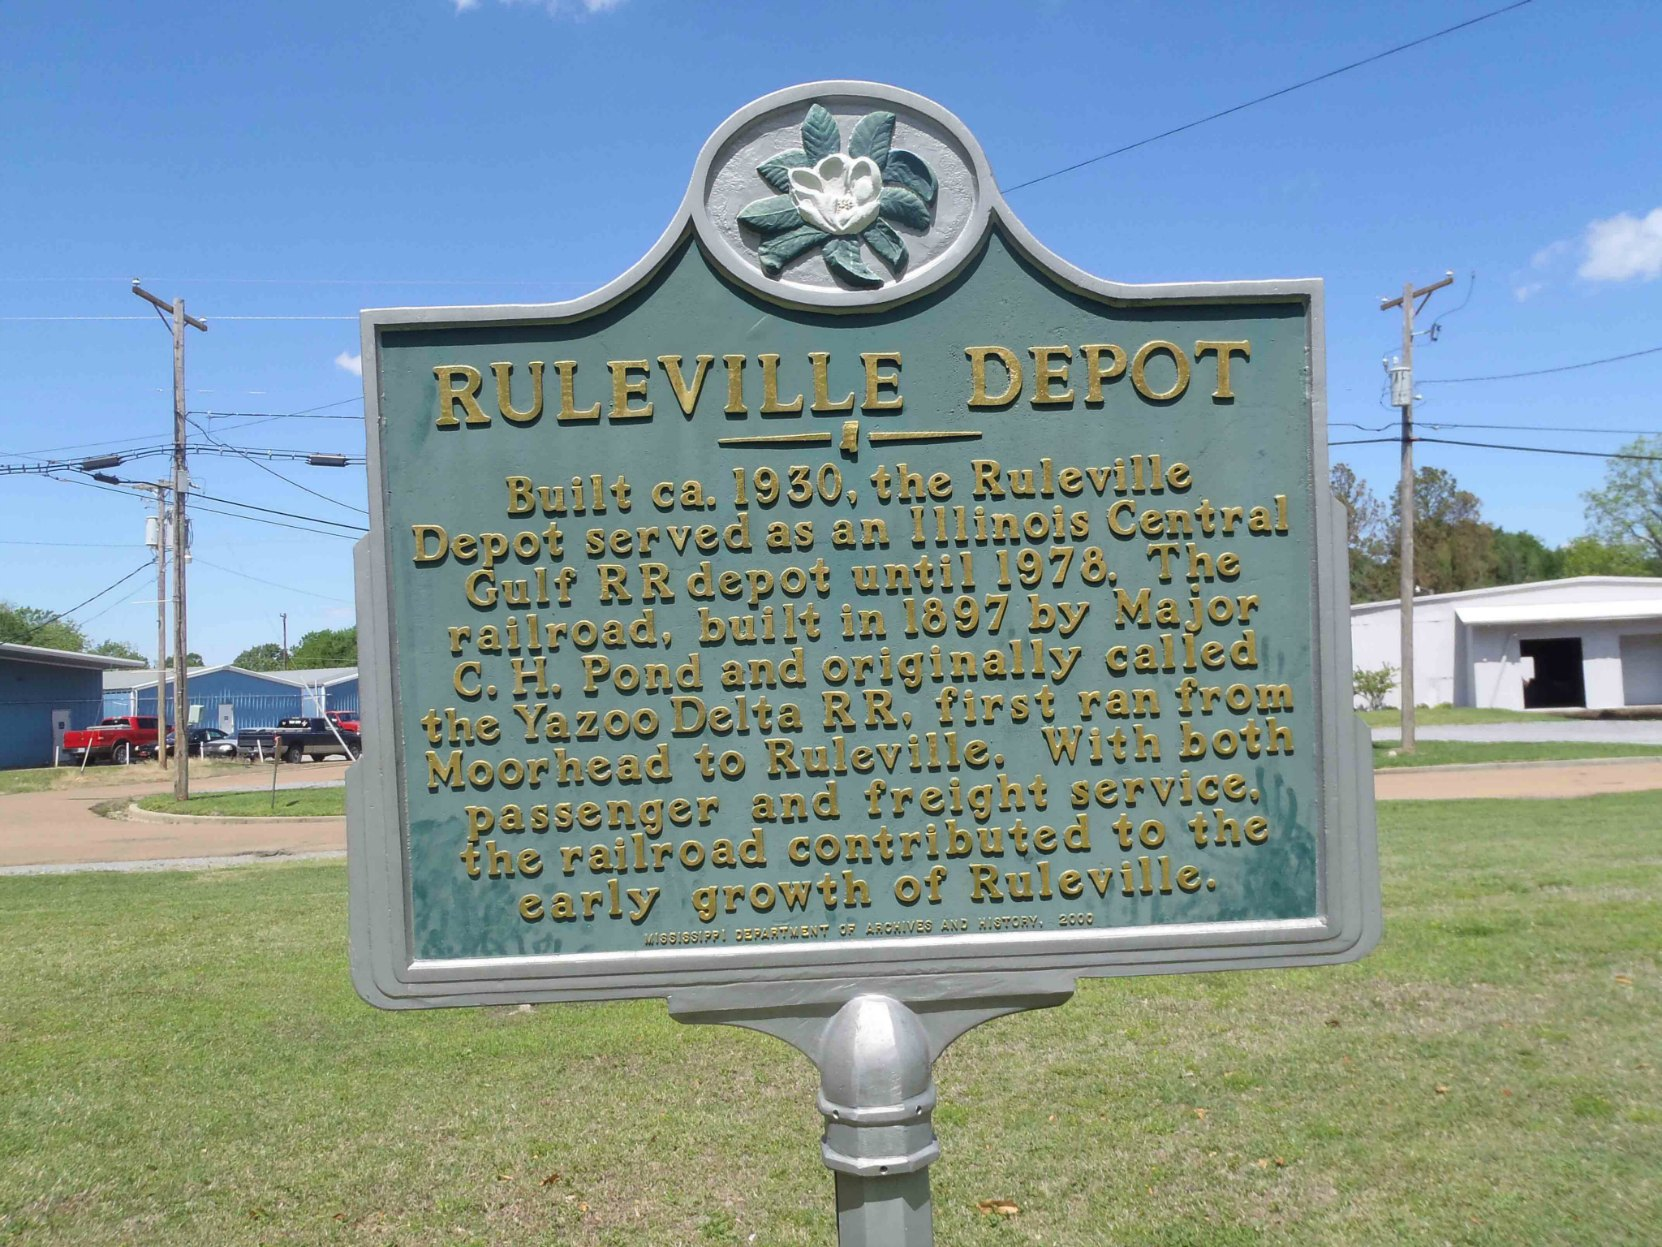 The Mississippi Department of Archives & History marker for the Ruleville Rail Depot building, now the Ruleville Chamber of Commerce, Ruleville, Sunflower County, Mississippi.